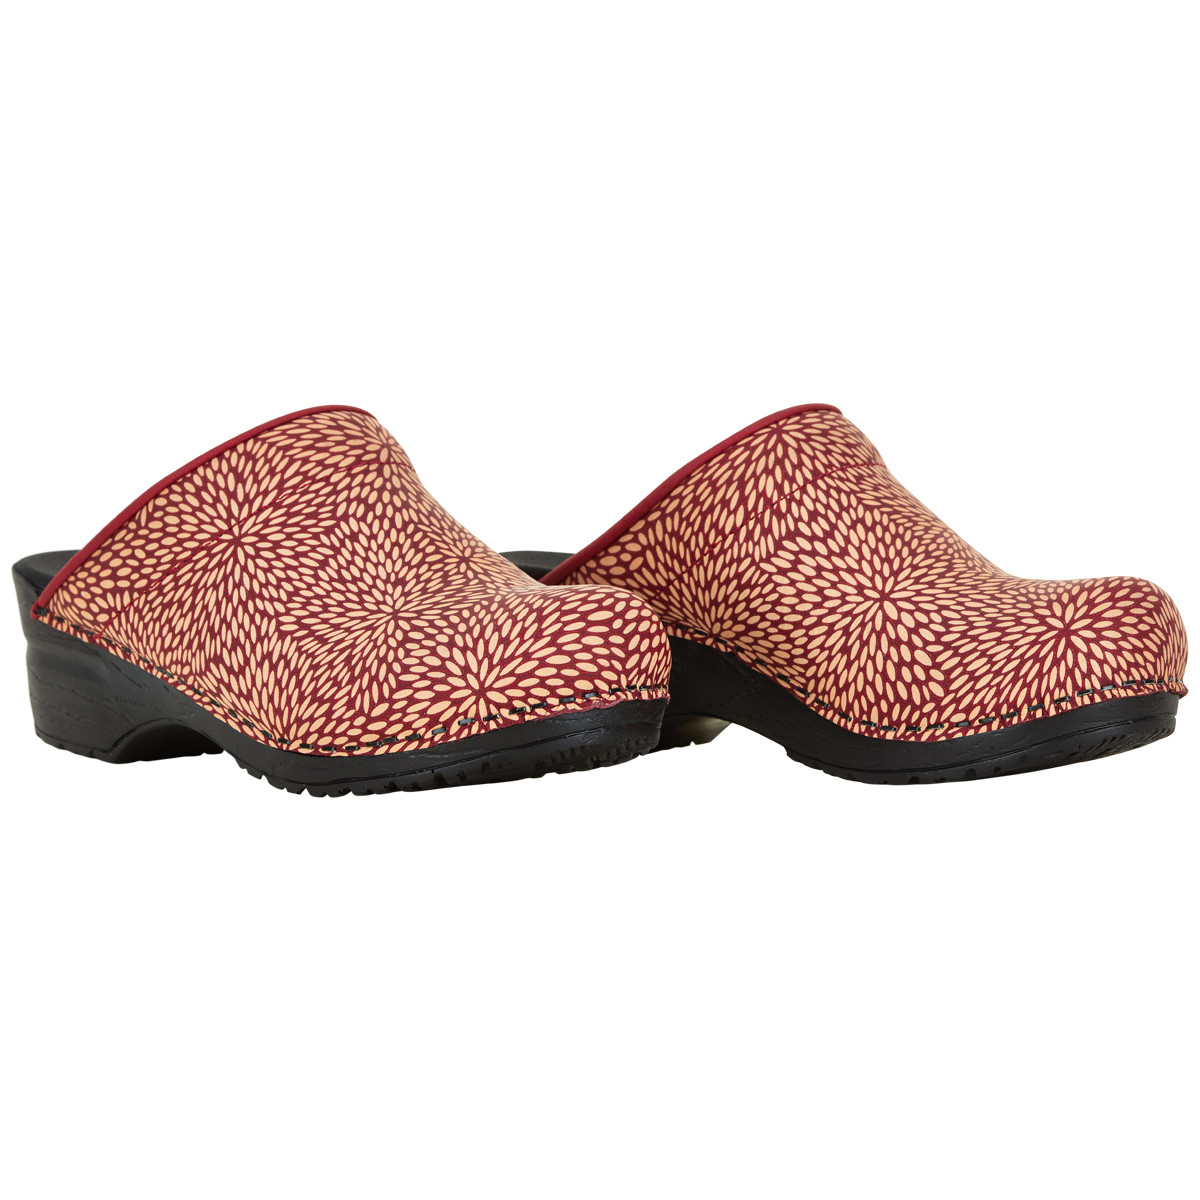 SANITA FELECIA CLOGS 459638 4